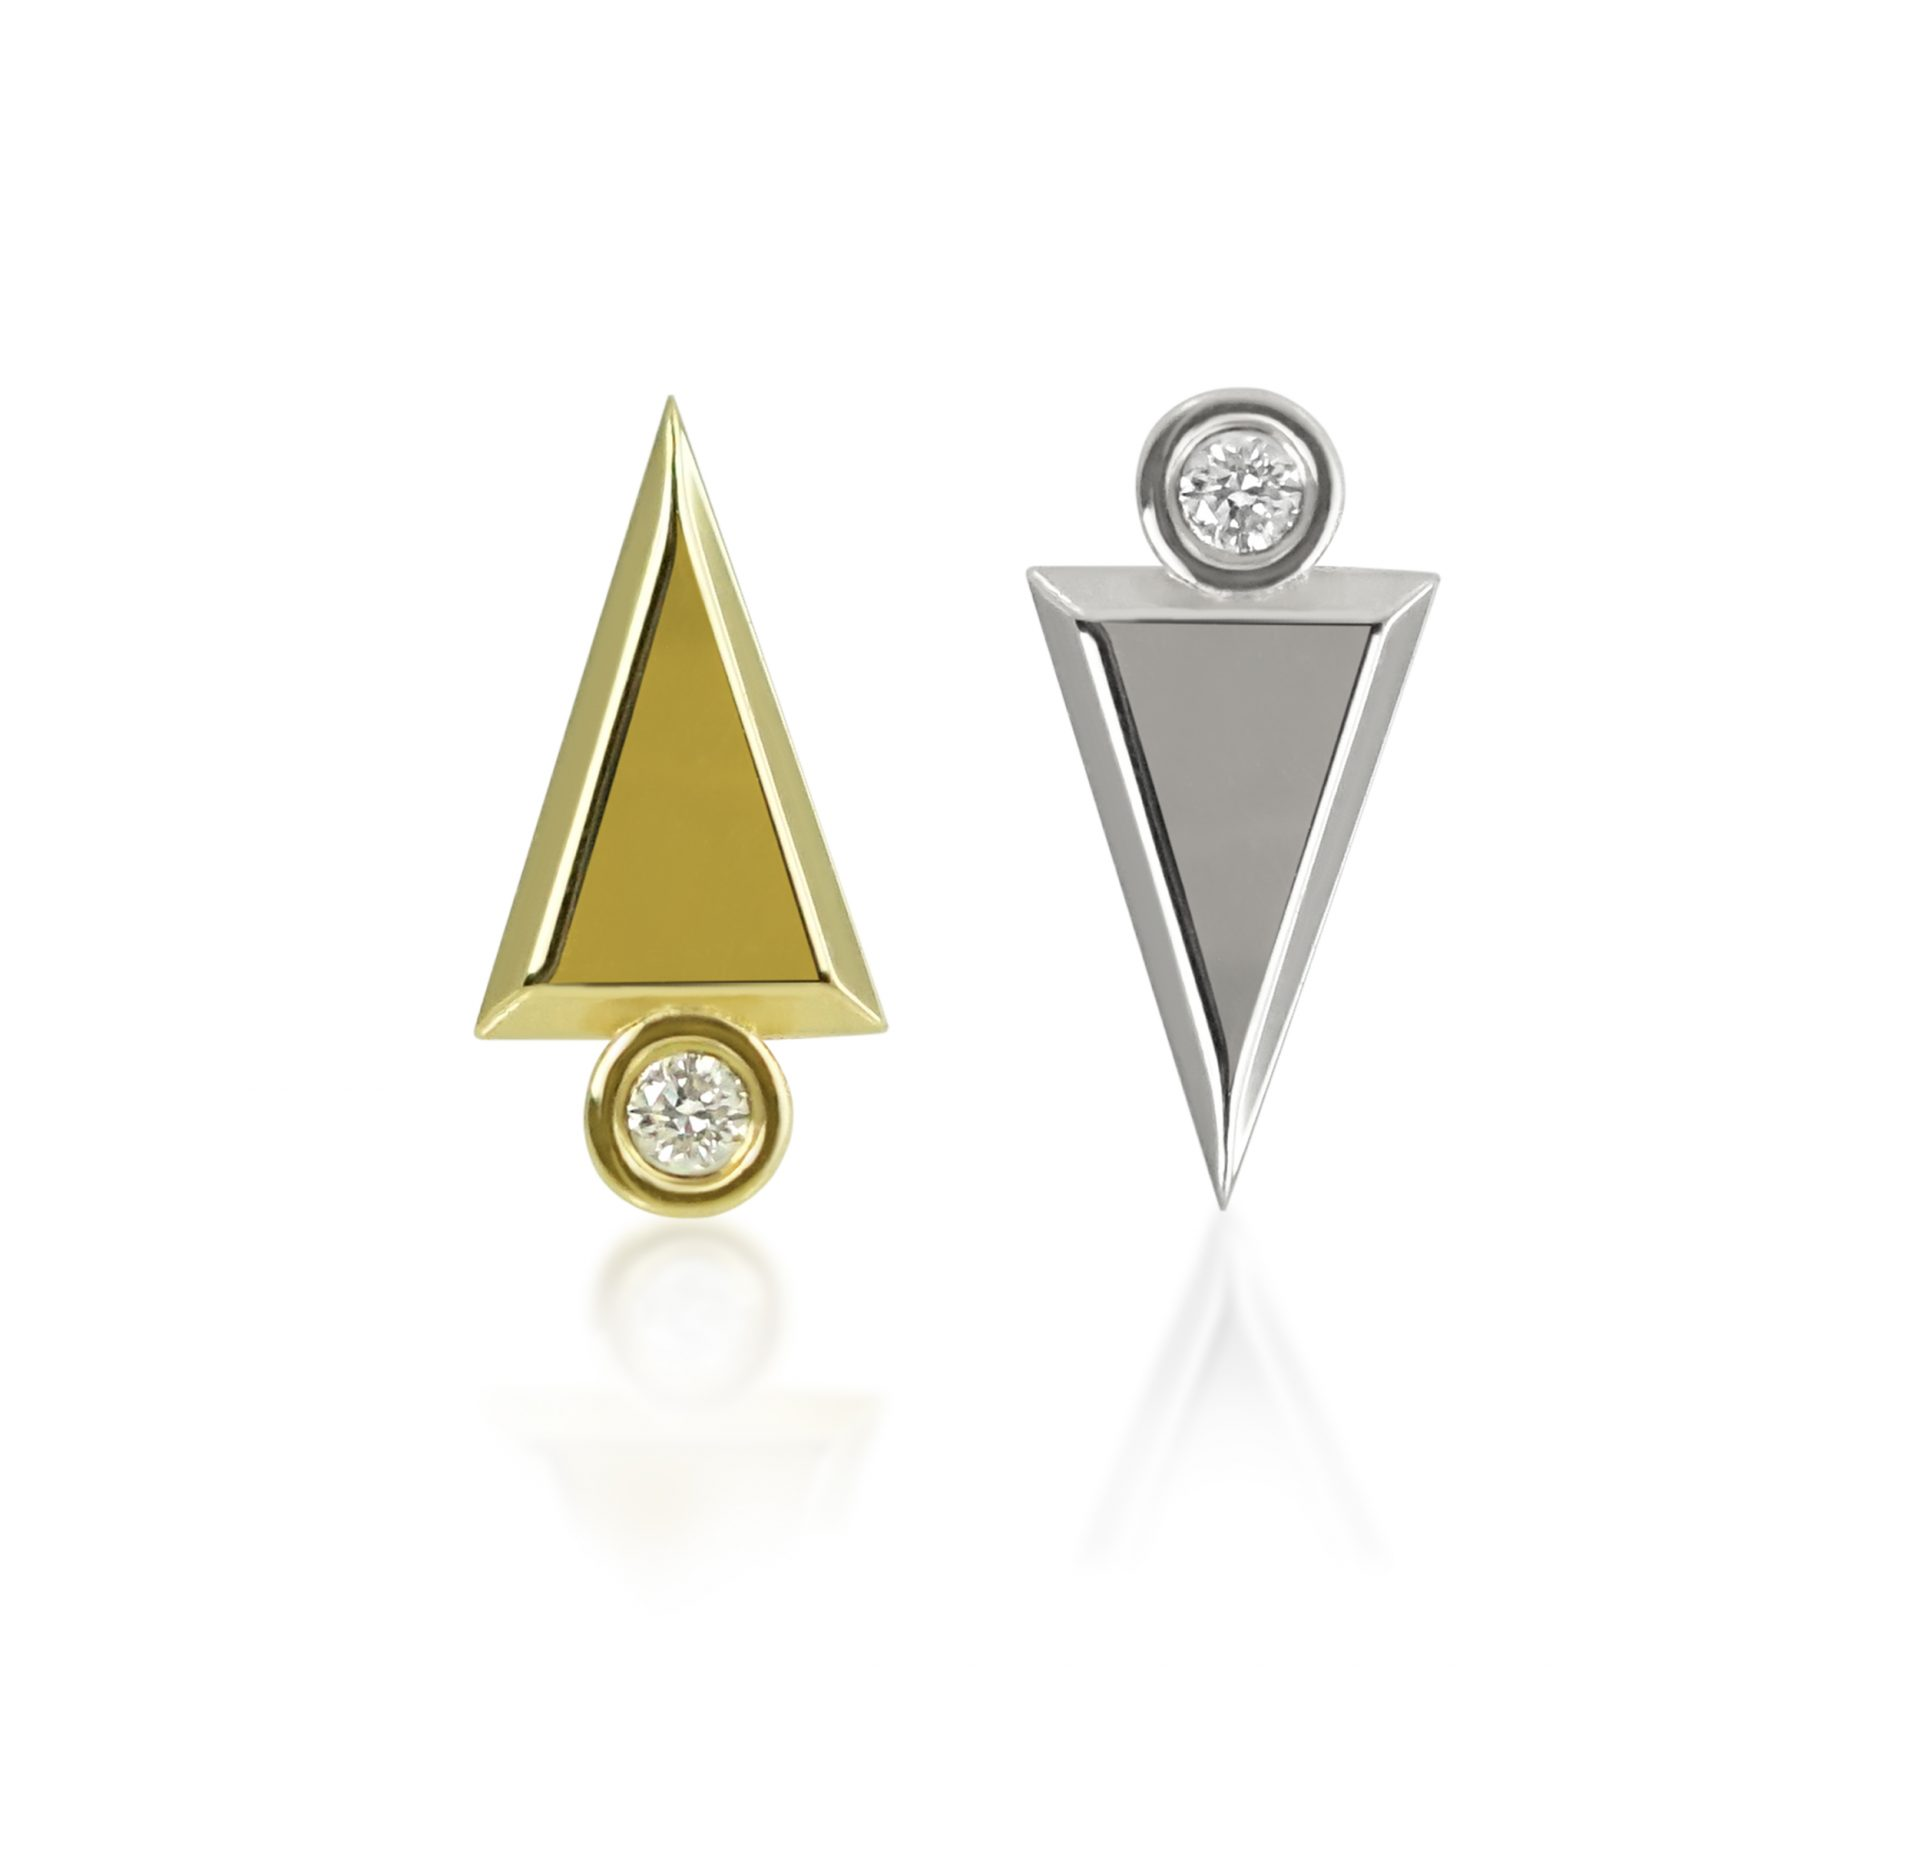 art-deco-desiner-cartilage-piercing-earring-screw-back-18k-white-yellow-solid-gold-lena-cohen